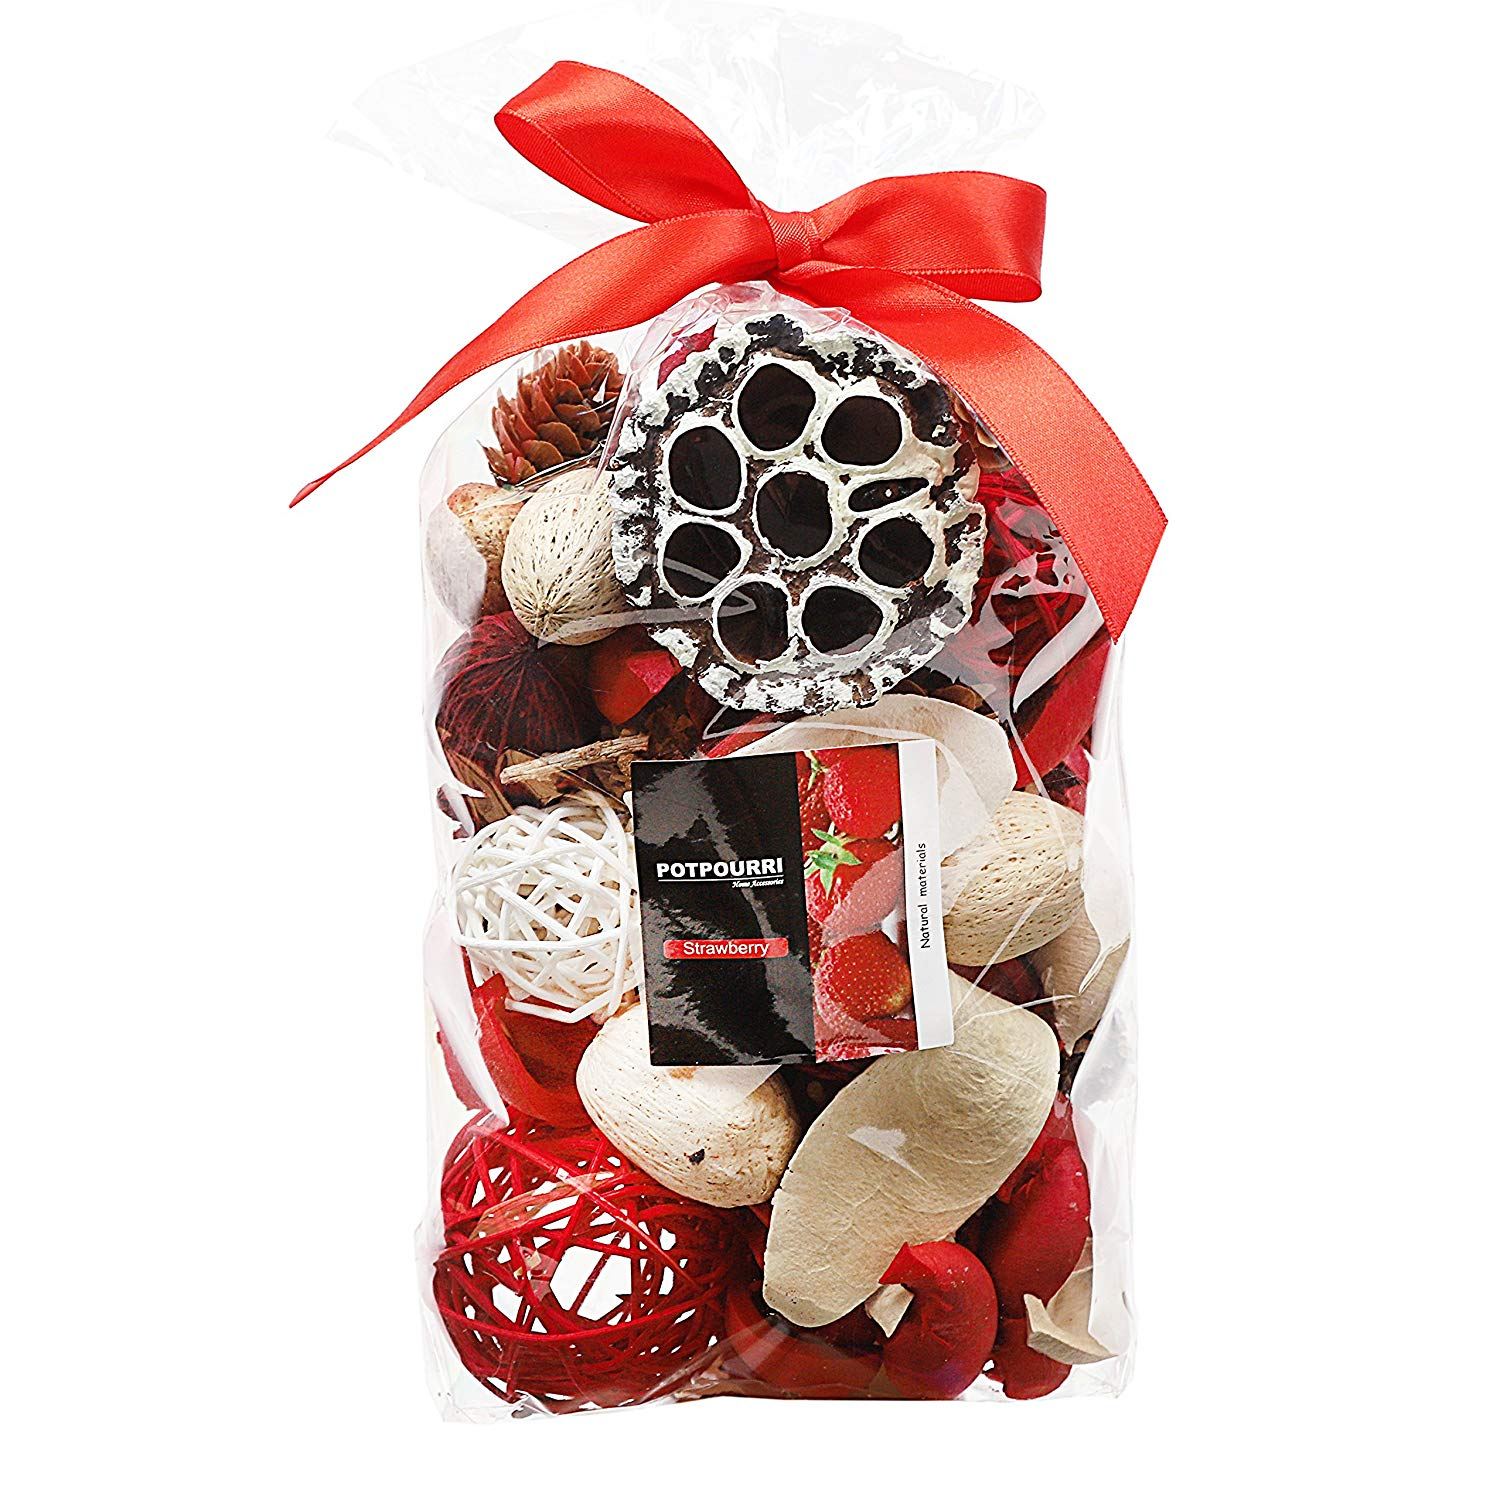 Qingbei Rina Red Strawbarry Scent Summer Potpourri Dried Flowers,Perfume Sachet, Decorative Bag and Gift - Rattan Balls,Lotus Pods, Pine Cones,Dried Plants And Flowers 9.9OZ